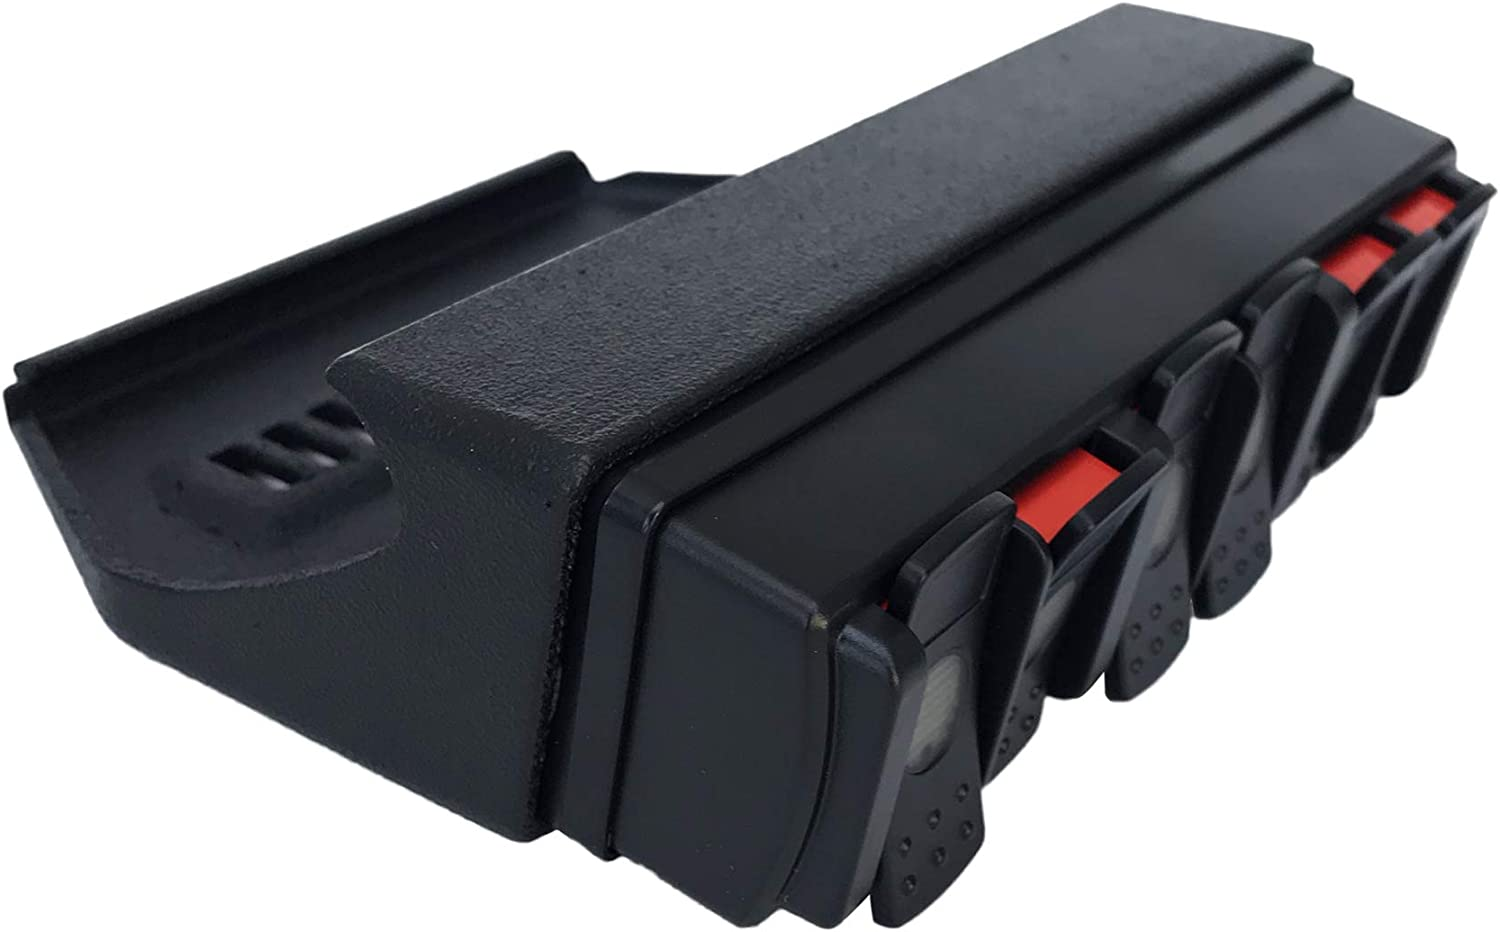 TRIGGER JL Overhead Switch Panel 6 Shooter